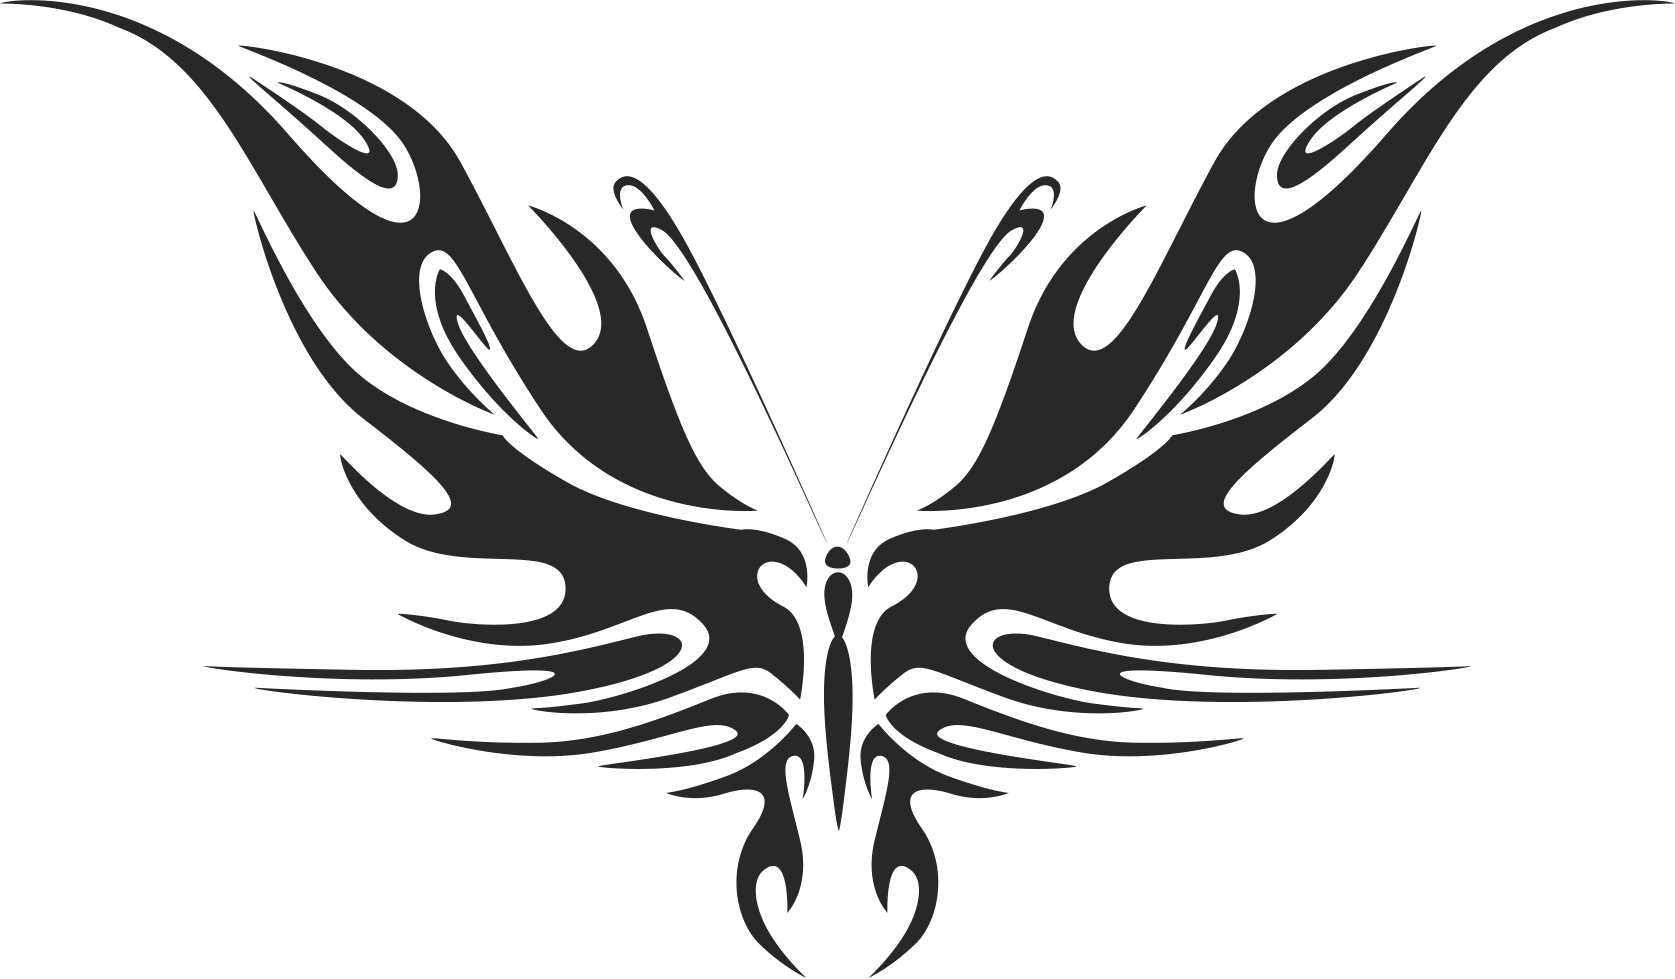 Butterfly Silhouette 044 Free CDR Vectors Art